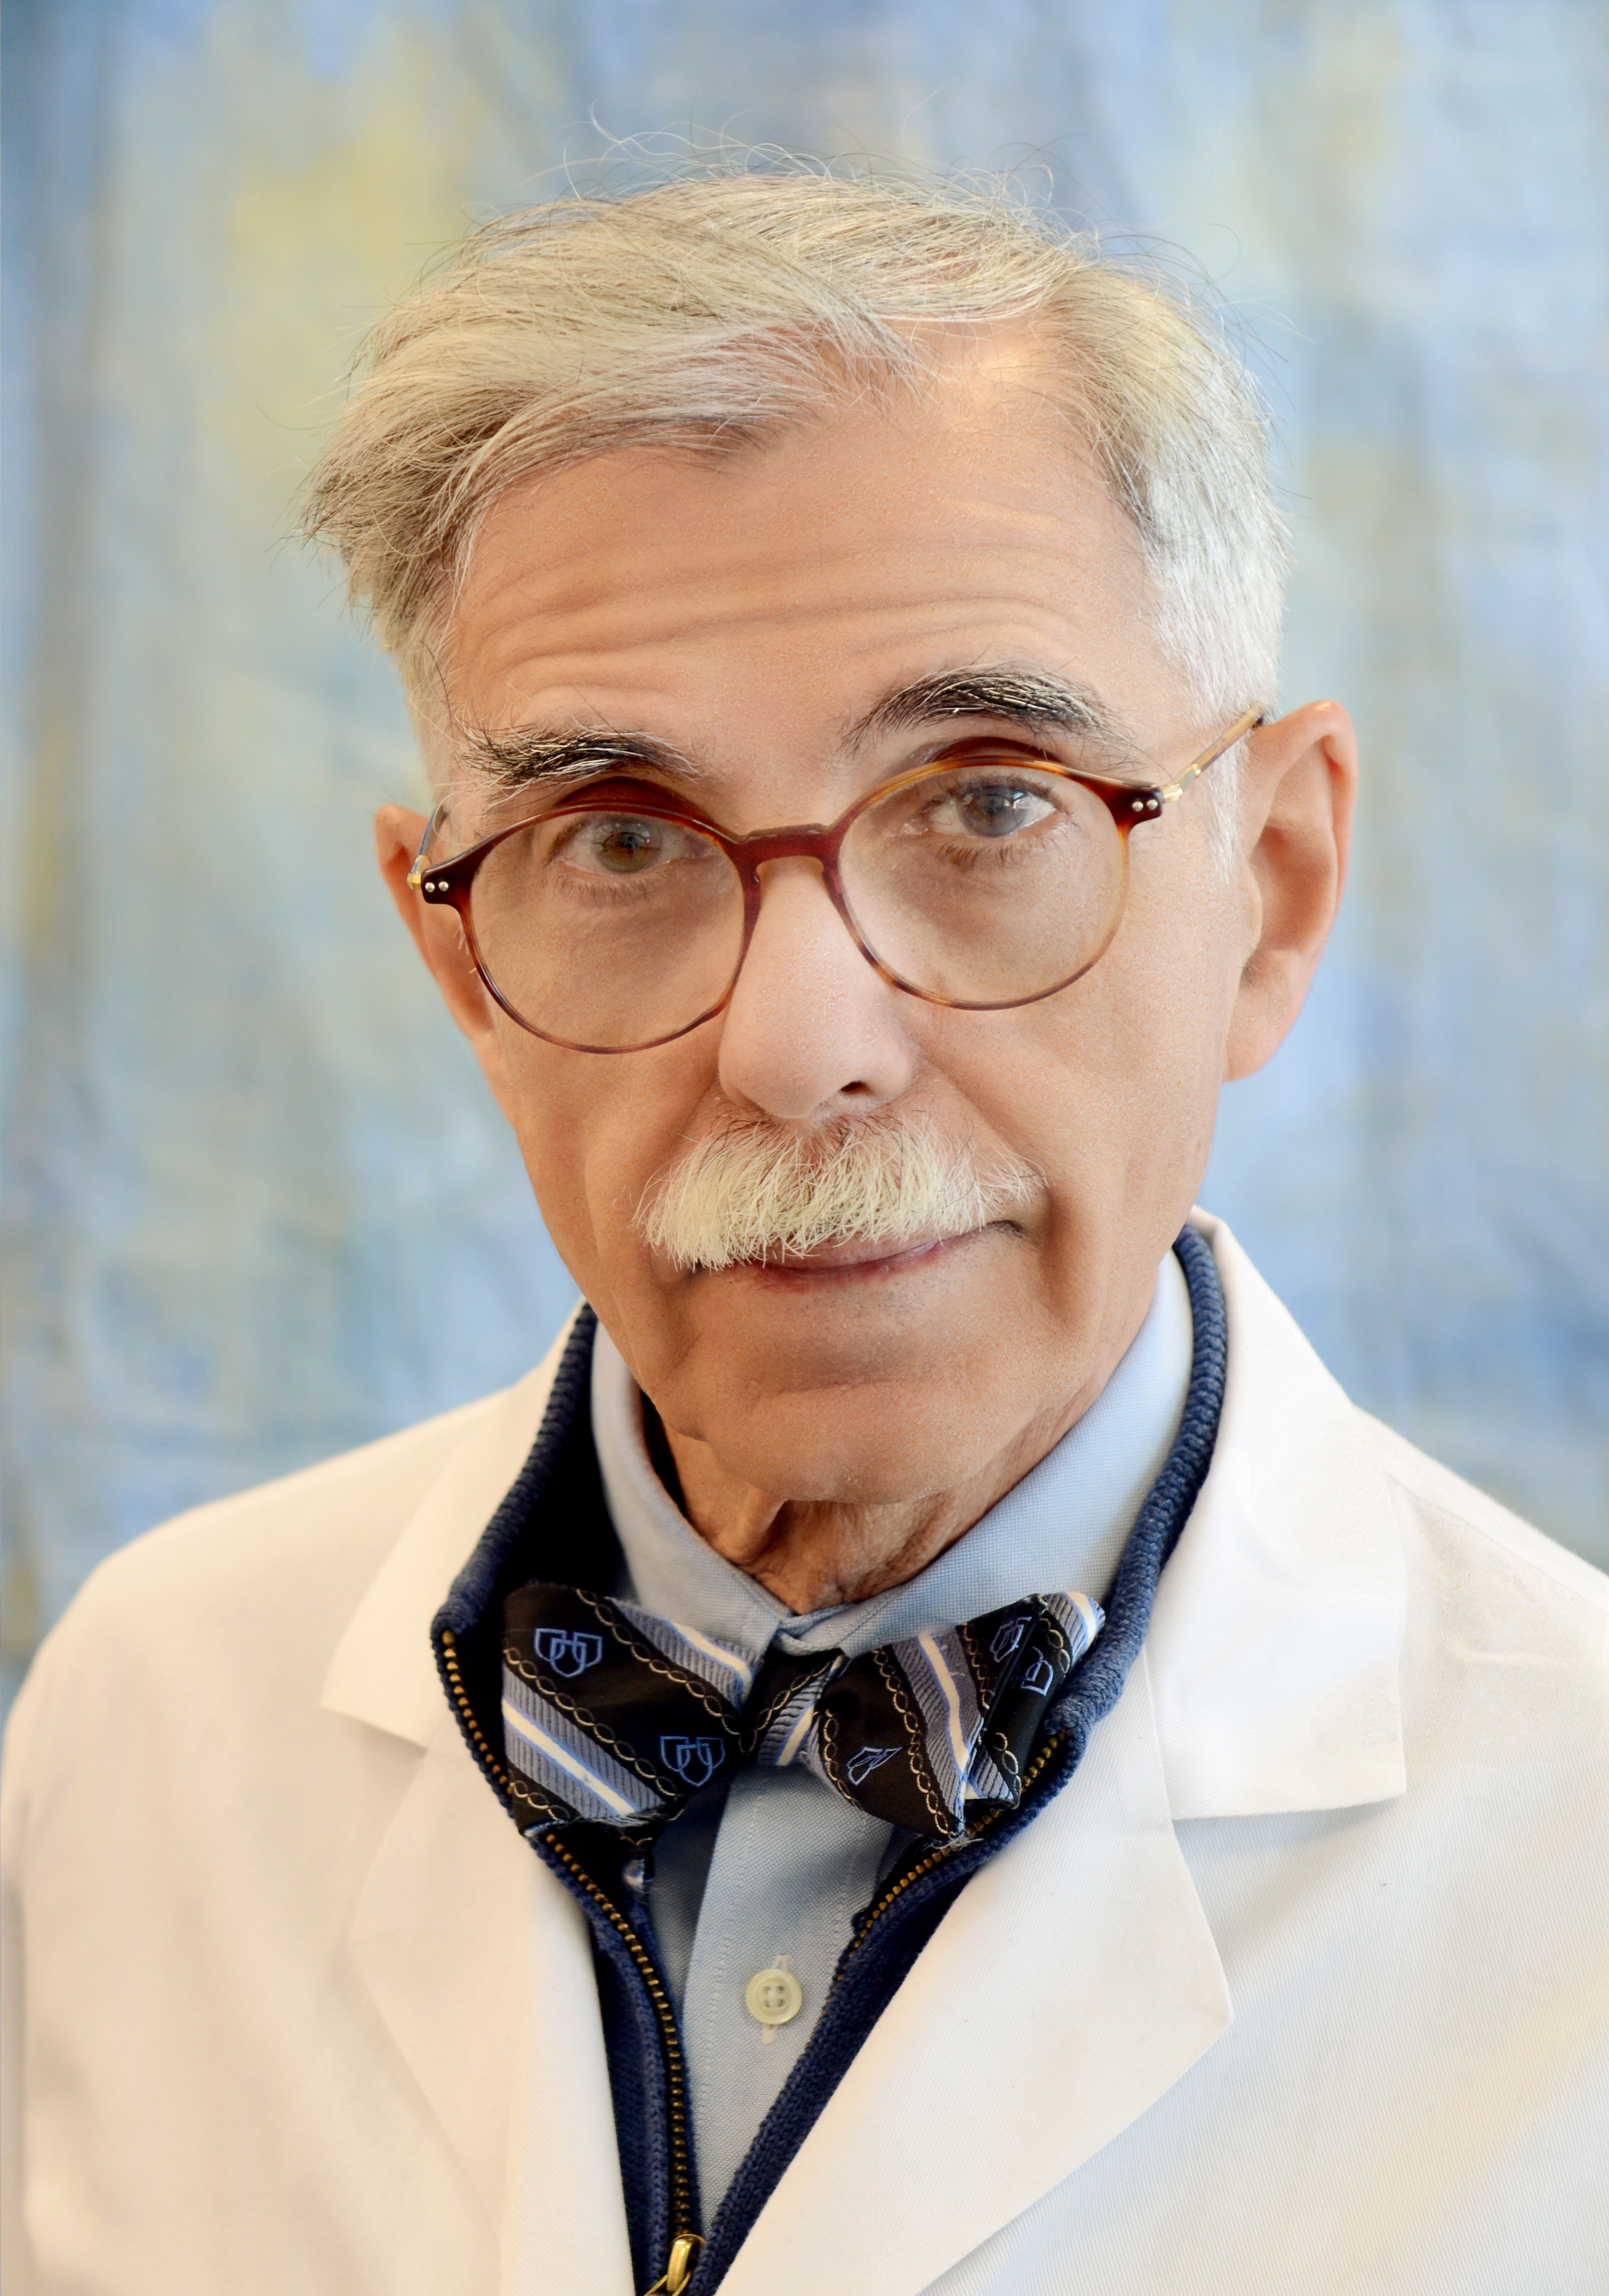 Norman M. Jacobs, MD